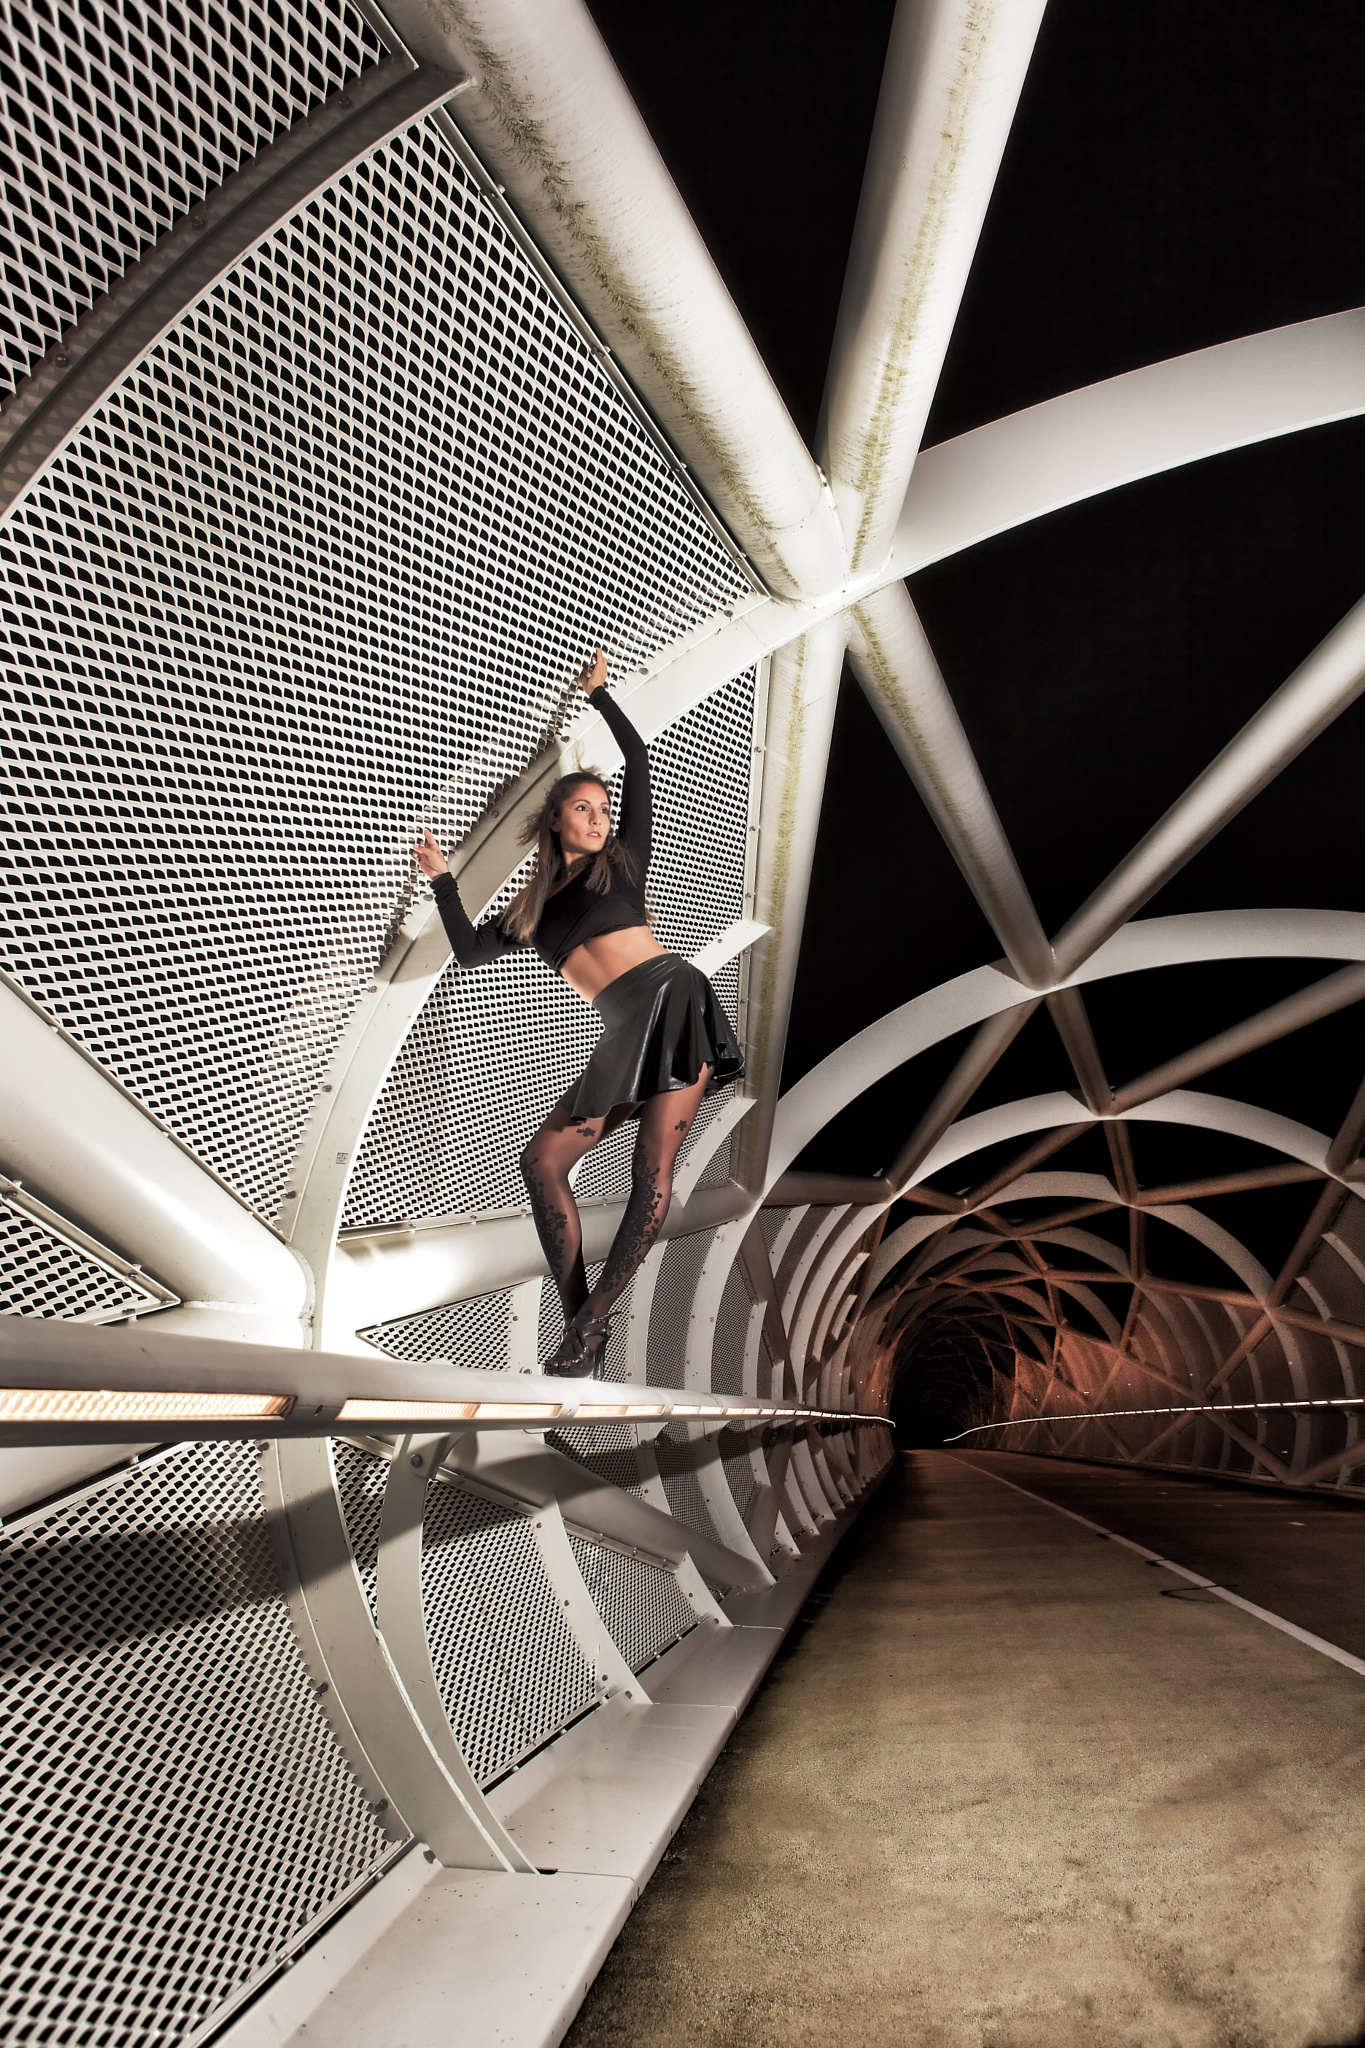 Tunnelvision  by stam.john1